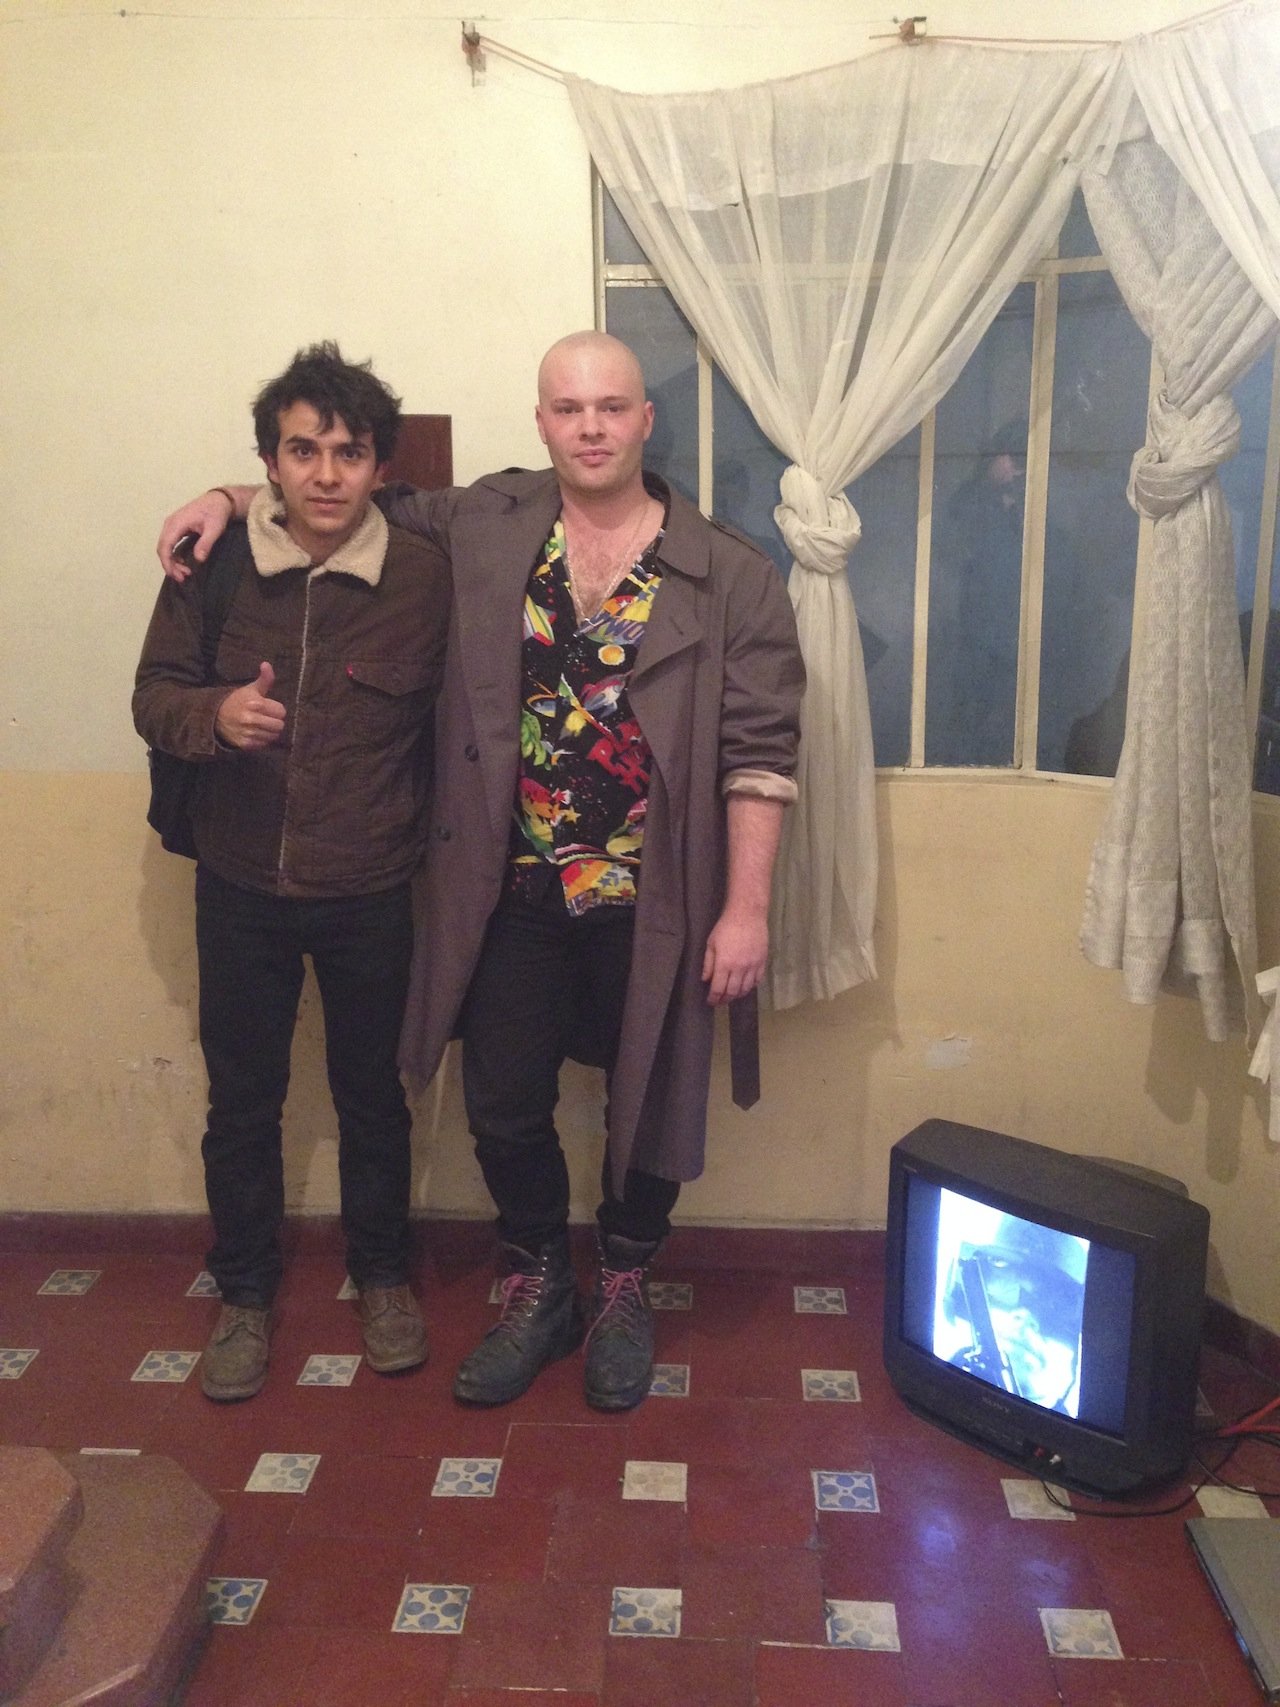 Daniel Aguilar Ruvalcaba of Biquini Wax, and Andrew Birk of NO Space at Biquini Wax with video piece by Skip Arnold.